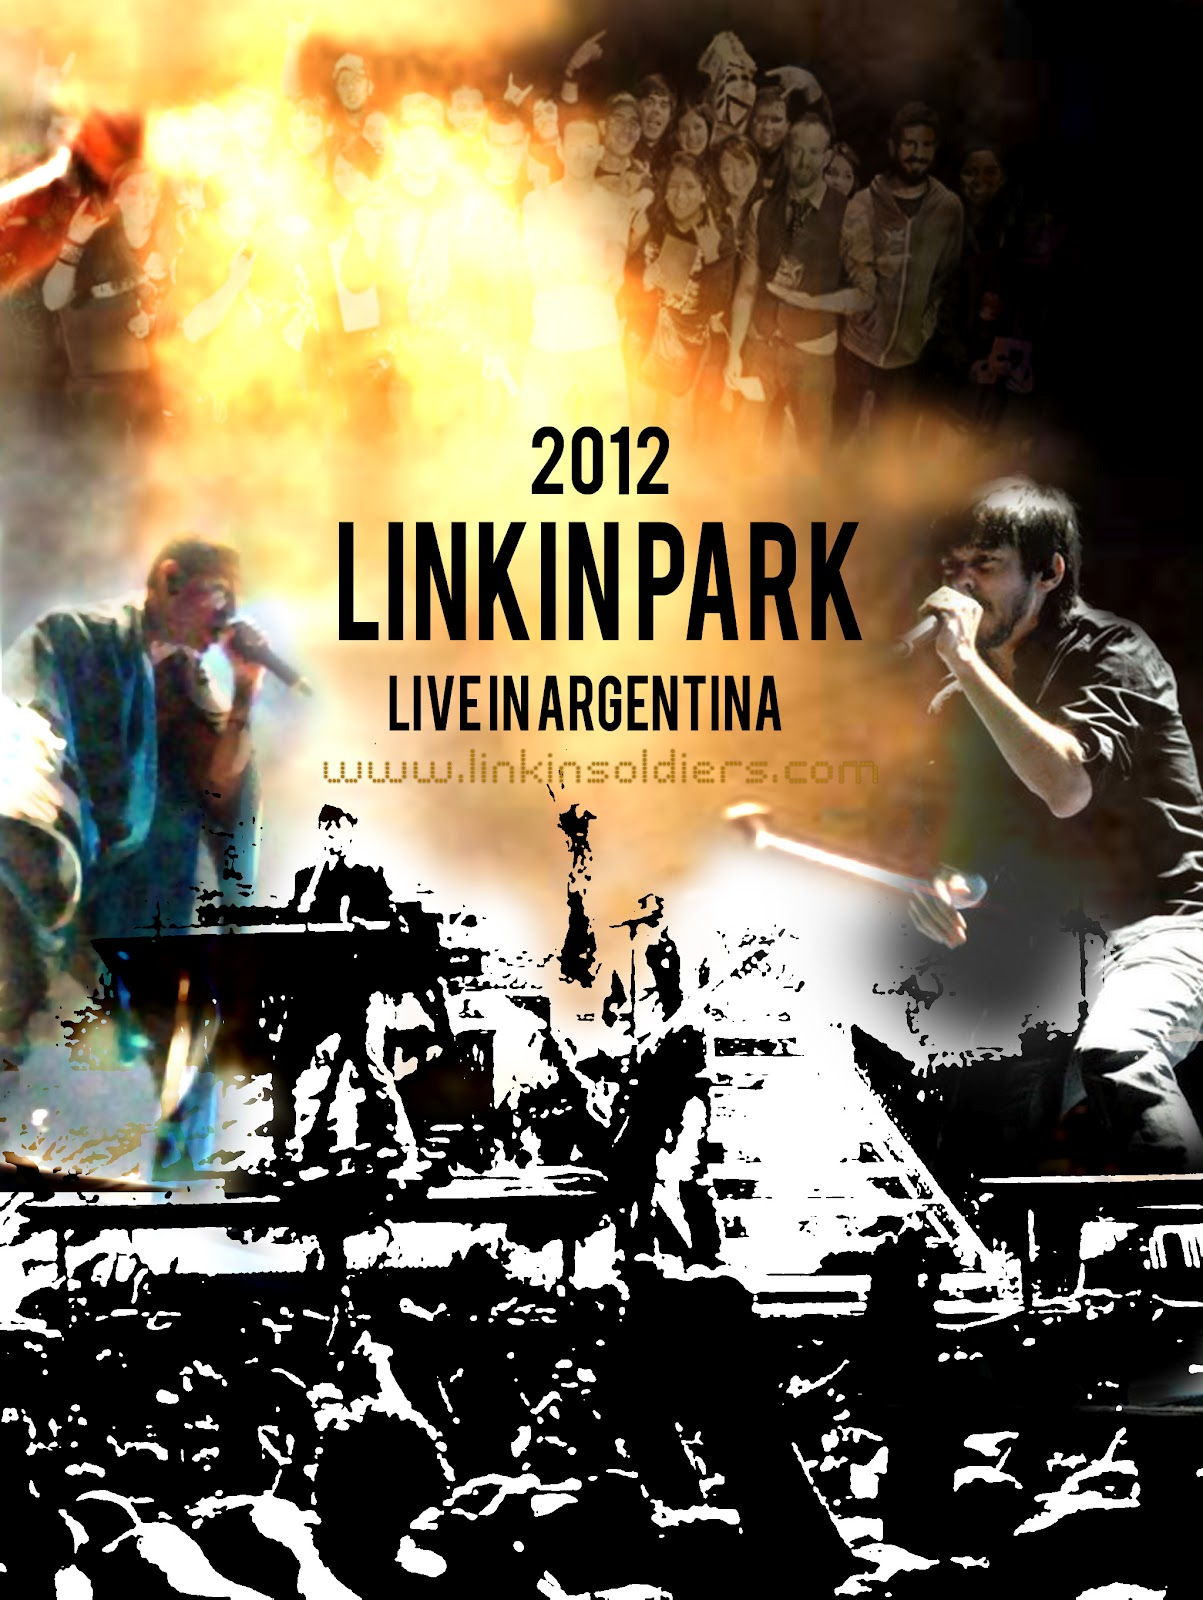 Linkin Park In Argentina  LinkinParkcom